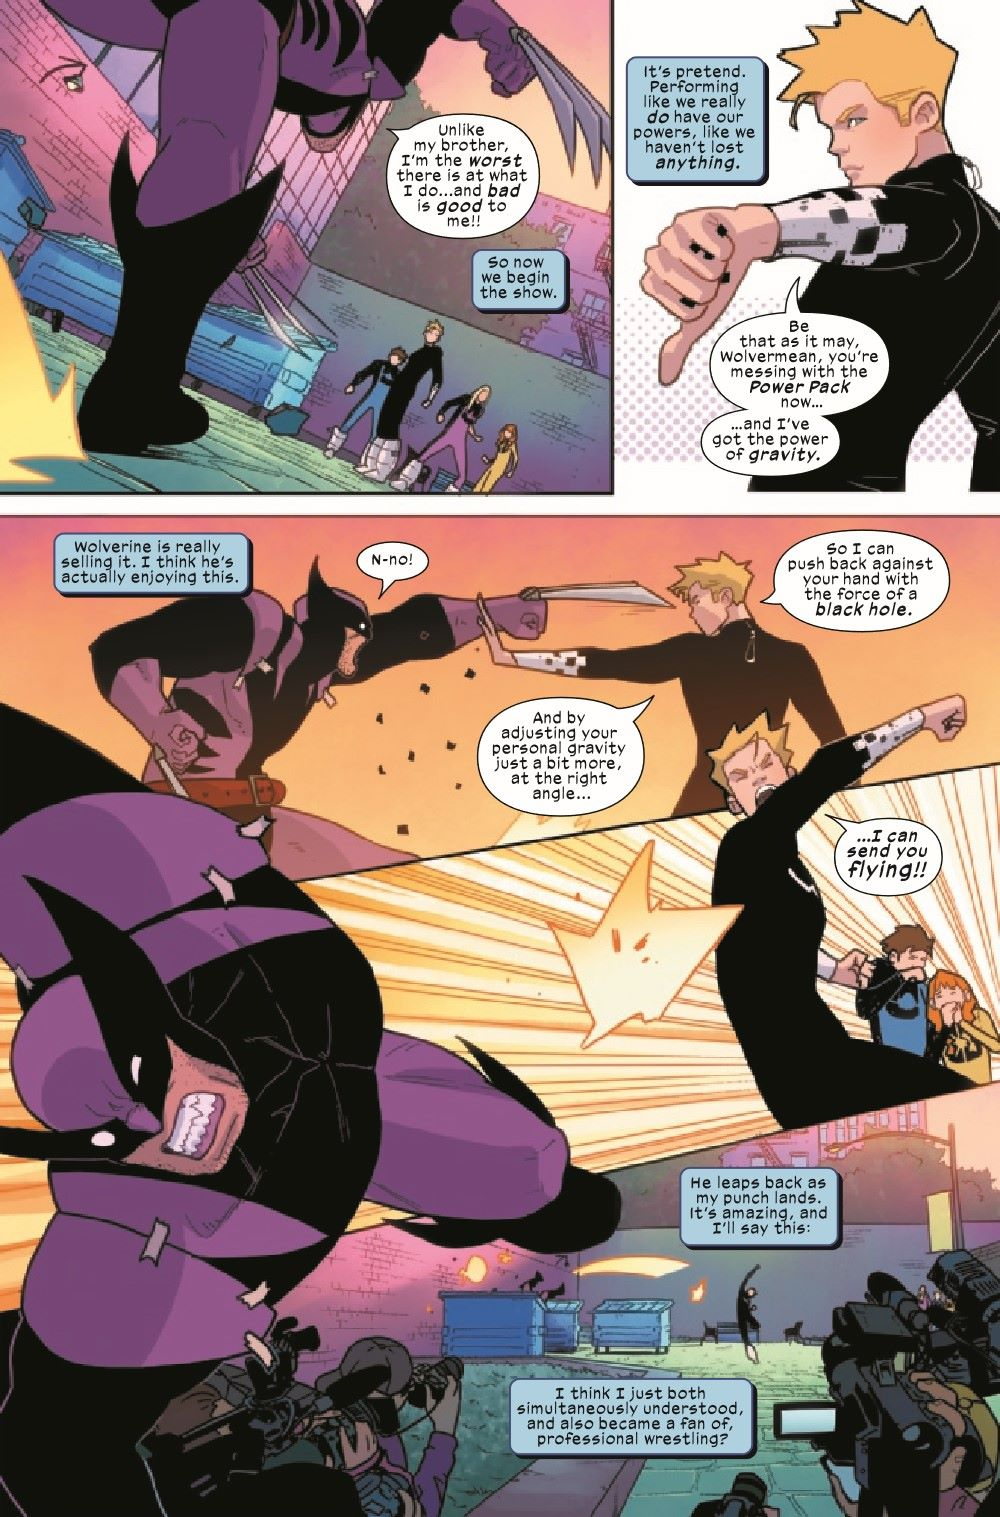 PWRPAC2020005_Preview-5 ComicList Previews: POWER PACK #5 (OF 5)